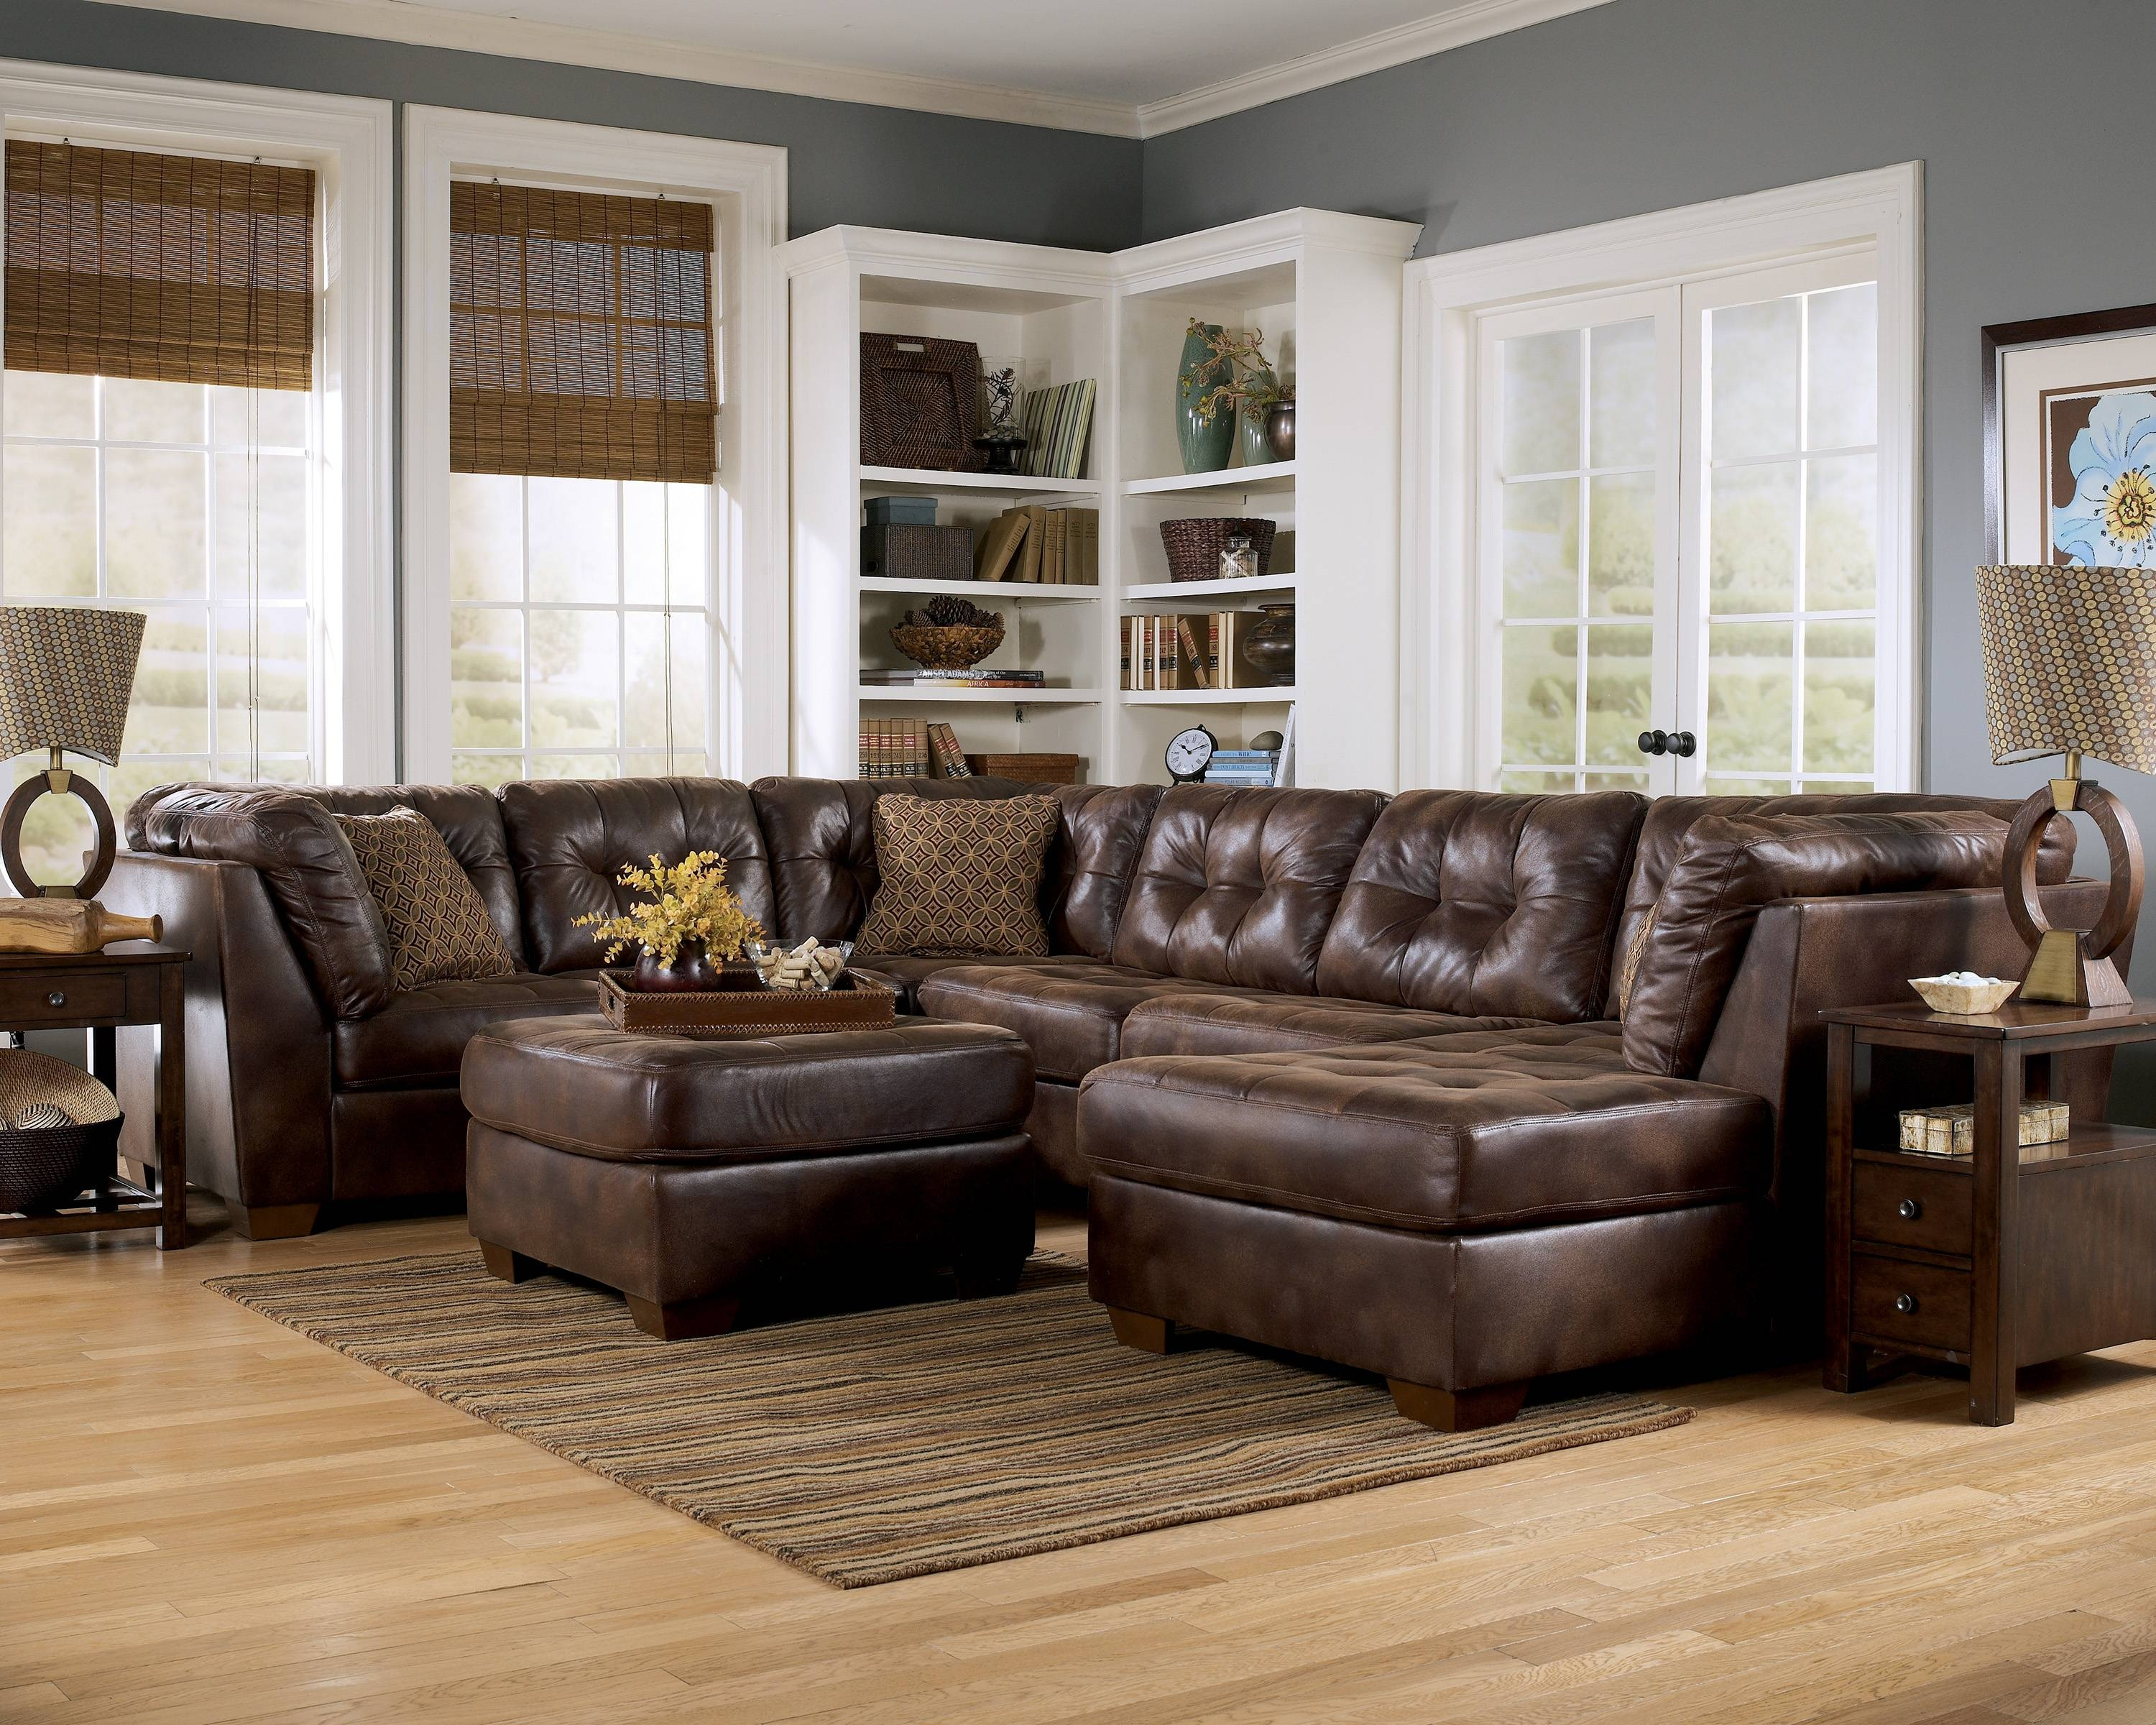 Ashley Furniture Couches. Sofa Bed Sectional Ashley Furniture with Ashley Furniture Brown Corduroy Sectional Sofas (Image 1 of 15)